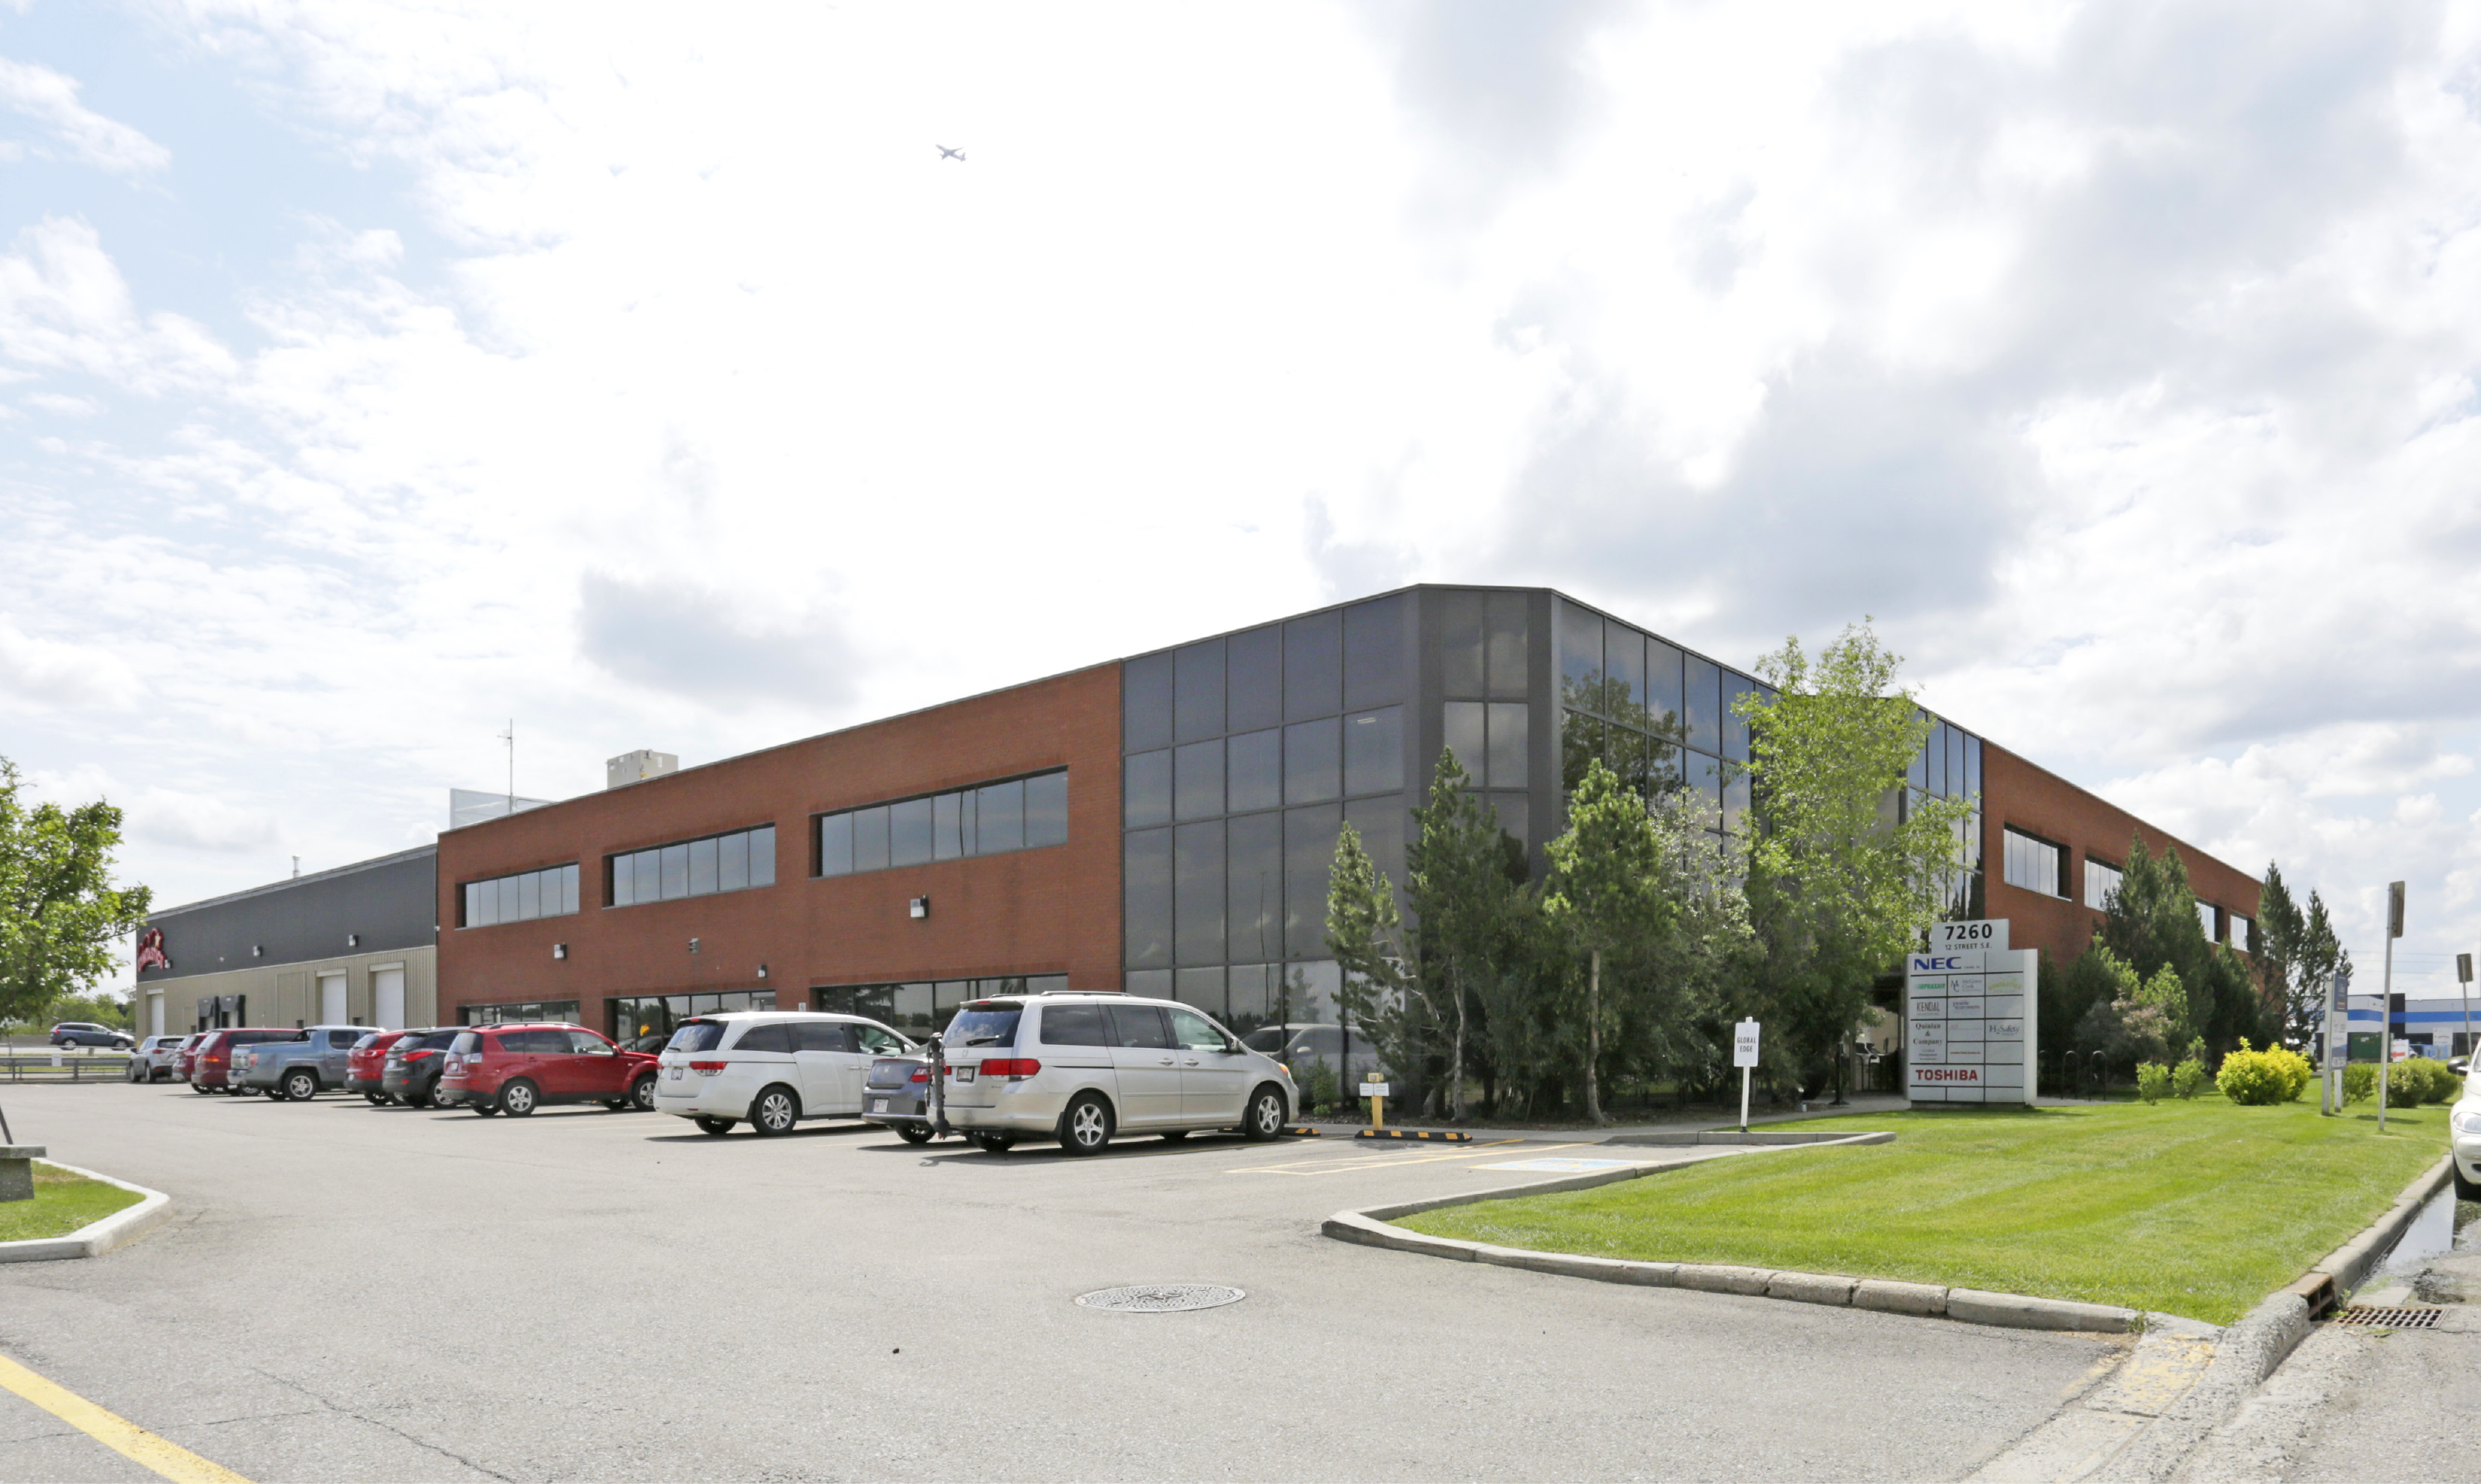 4,116 & 5,635 sq. ft. of Conveniently Located Office Space